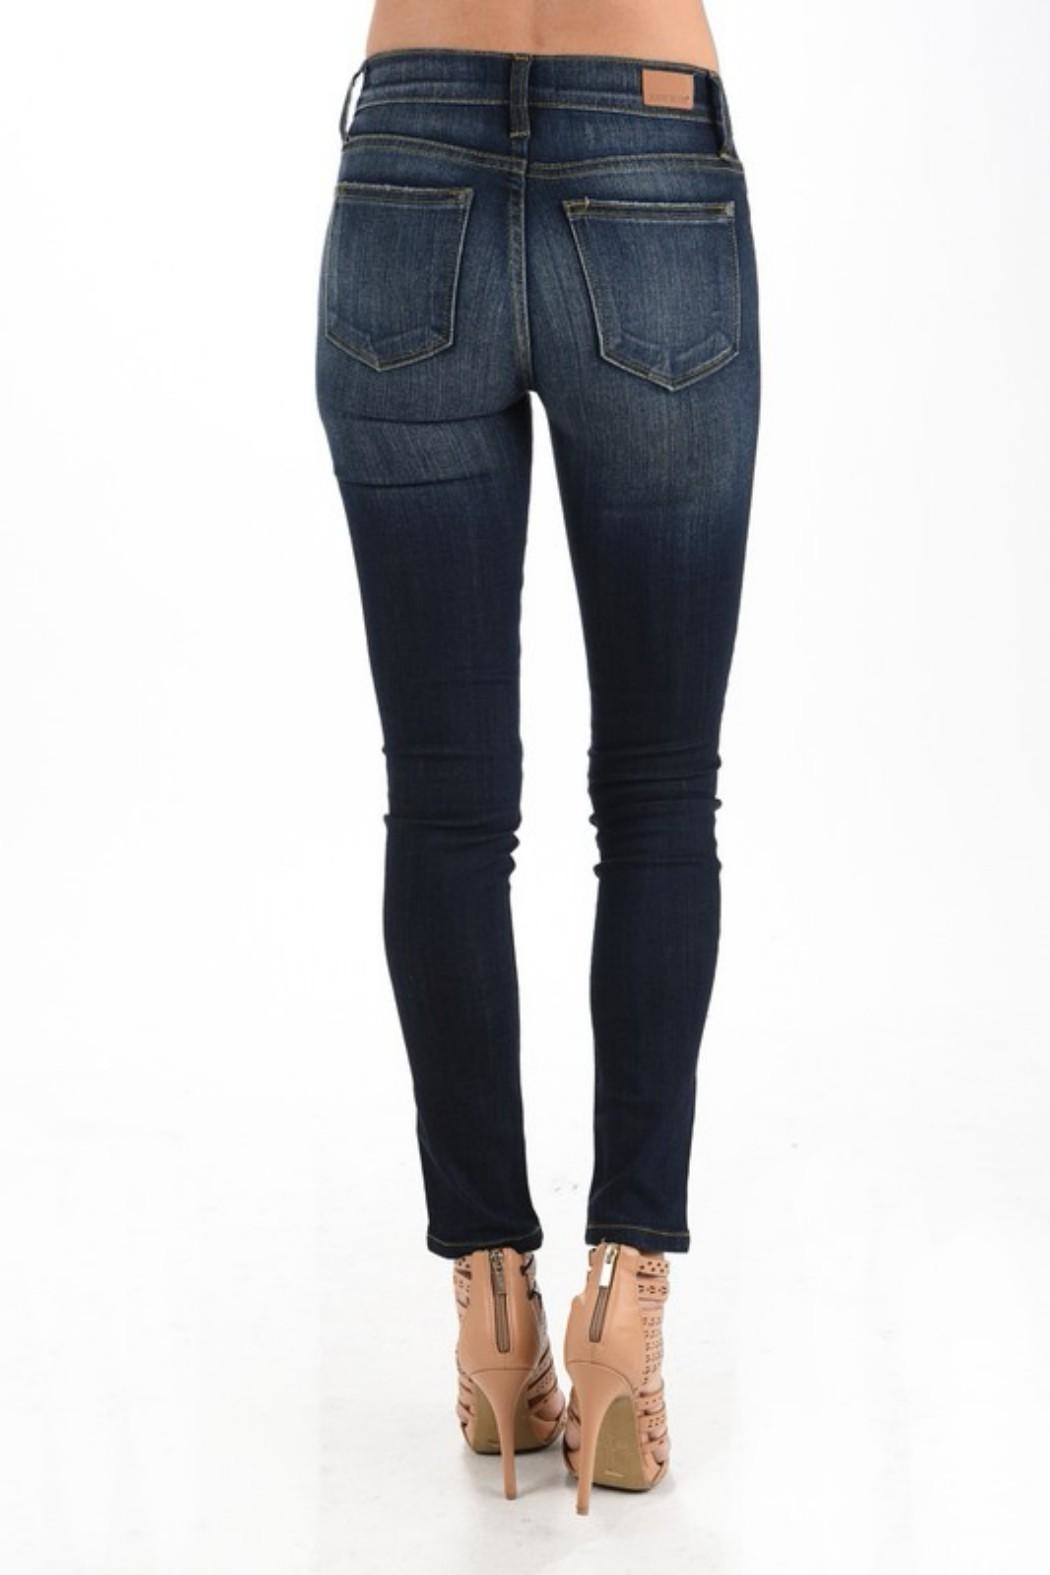 Judy Blue Dark Wash Skinnys - Back Cropped Image